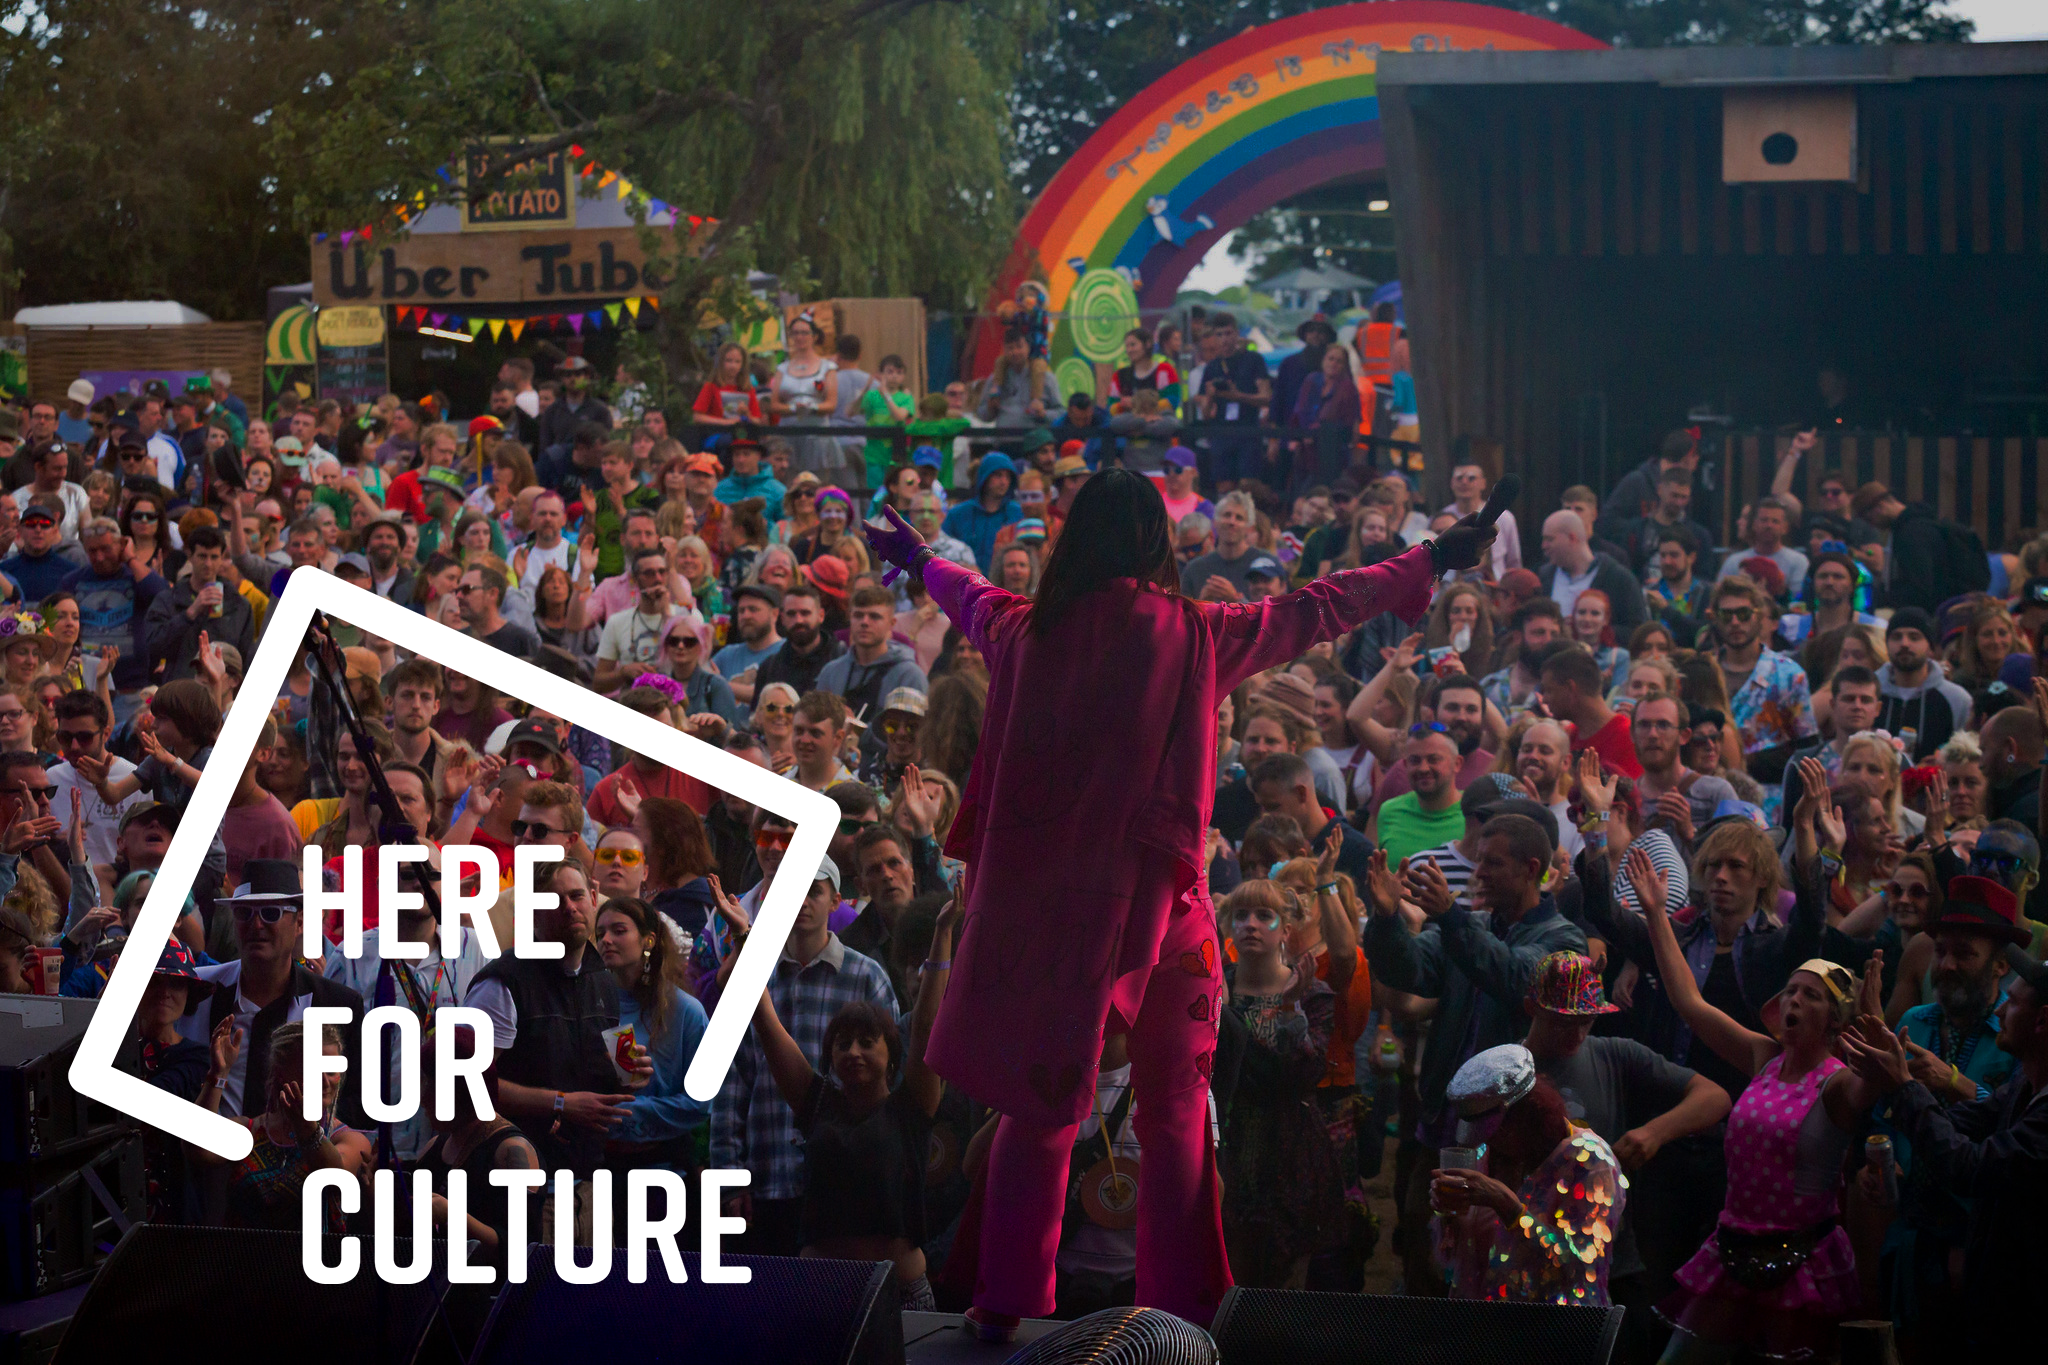 Here for Culture logo with a man in pink cape arms outstretched towards a crowd of festival goers. A rainbow in the distance.